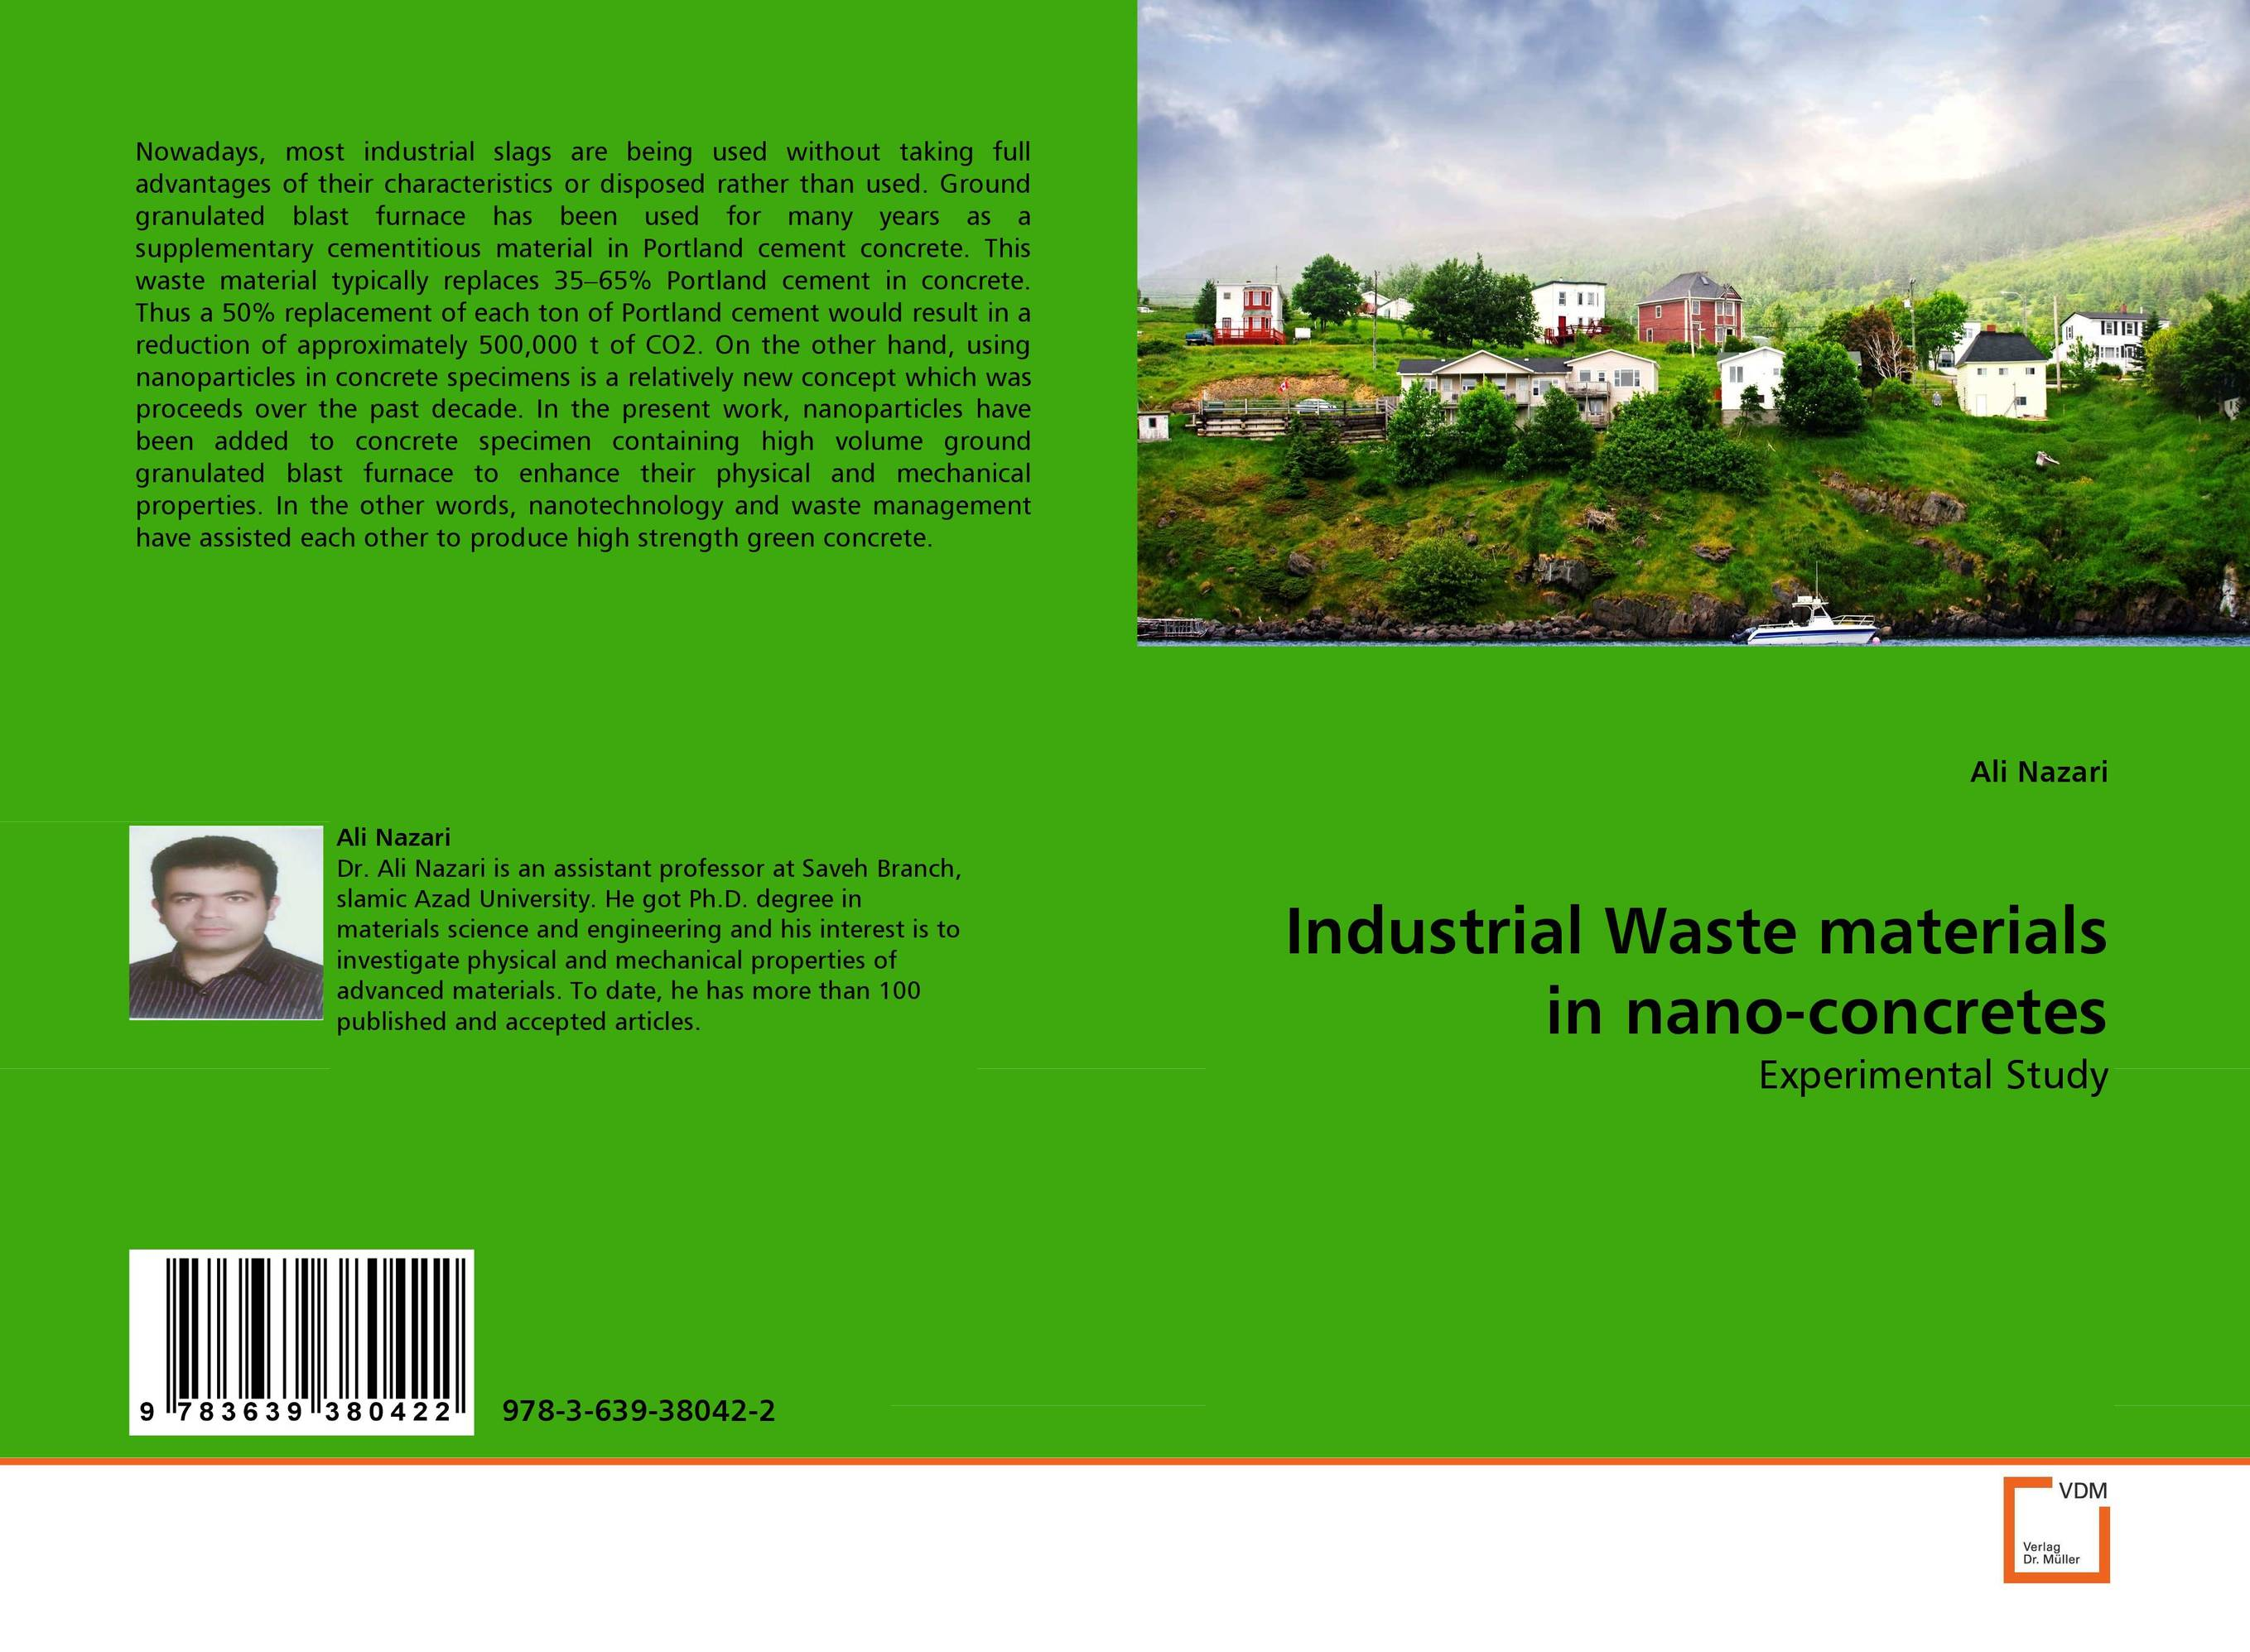 Industrial Waste materials in nano-concretes industrial wastes in concrete alternative to cement